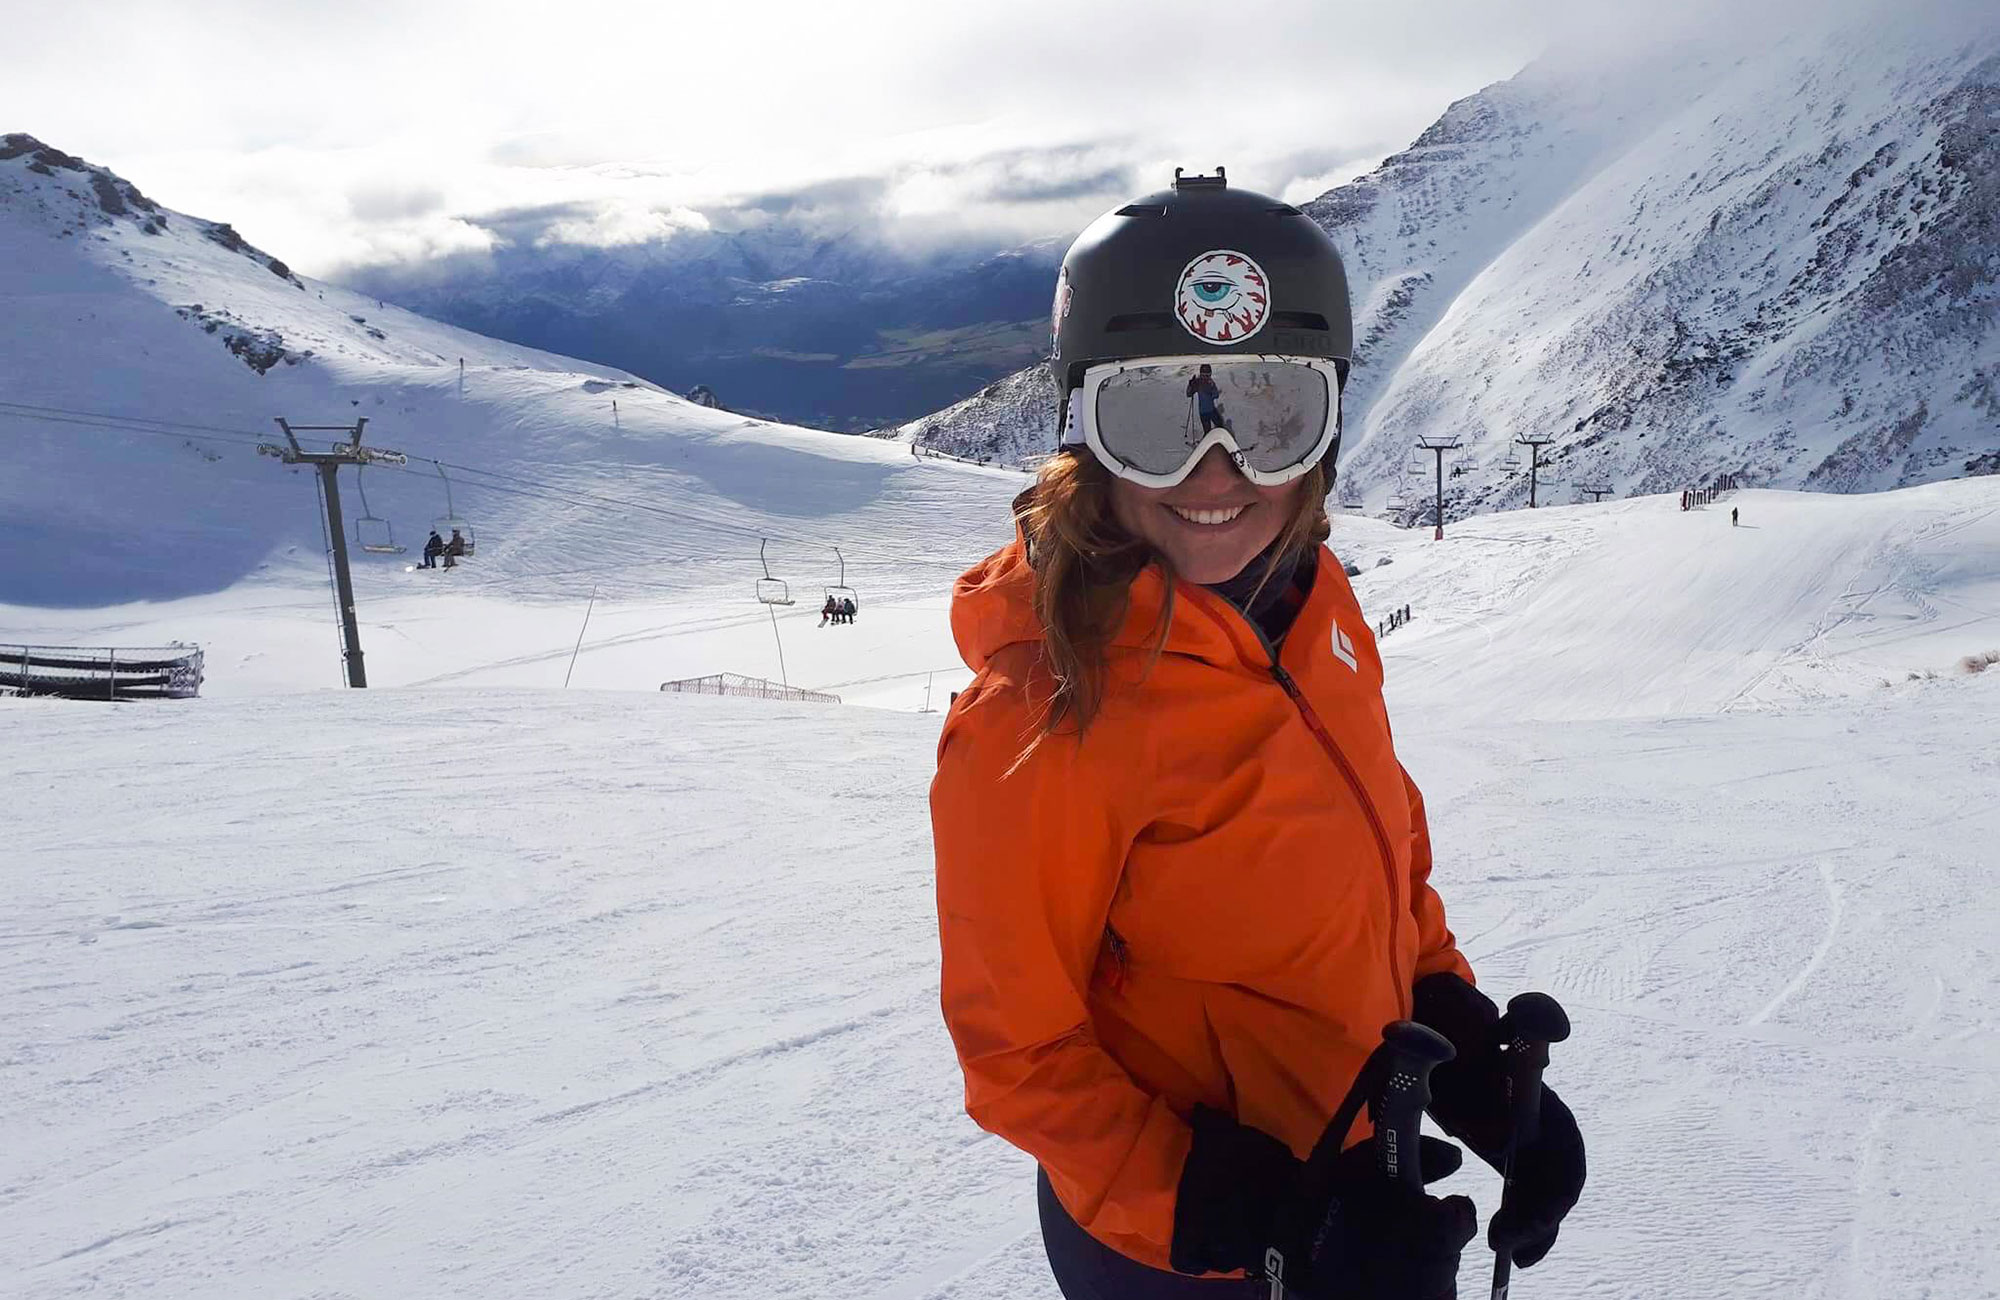 girl skiing in new zealand on the perfect slopes during her study abroad semester in new zealand